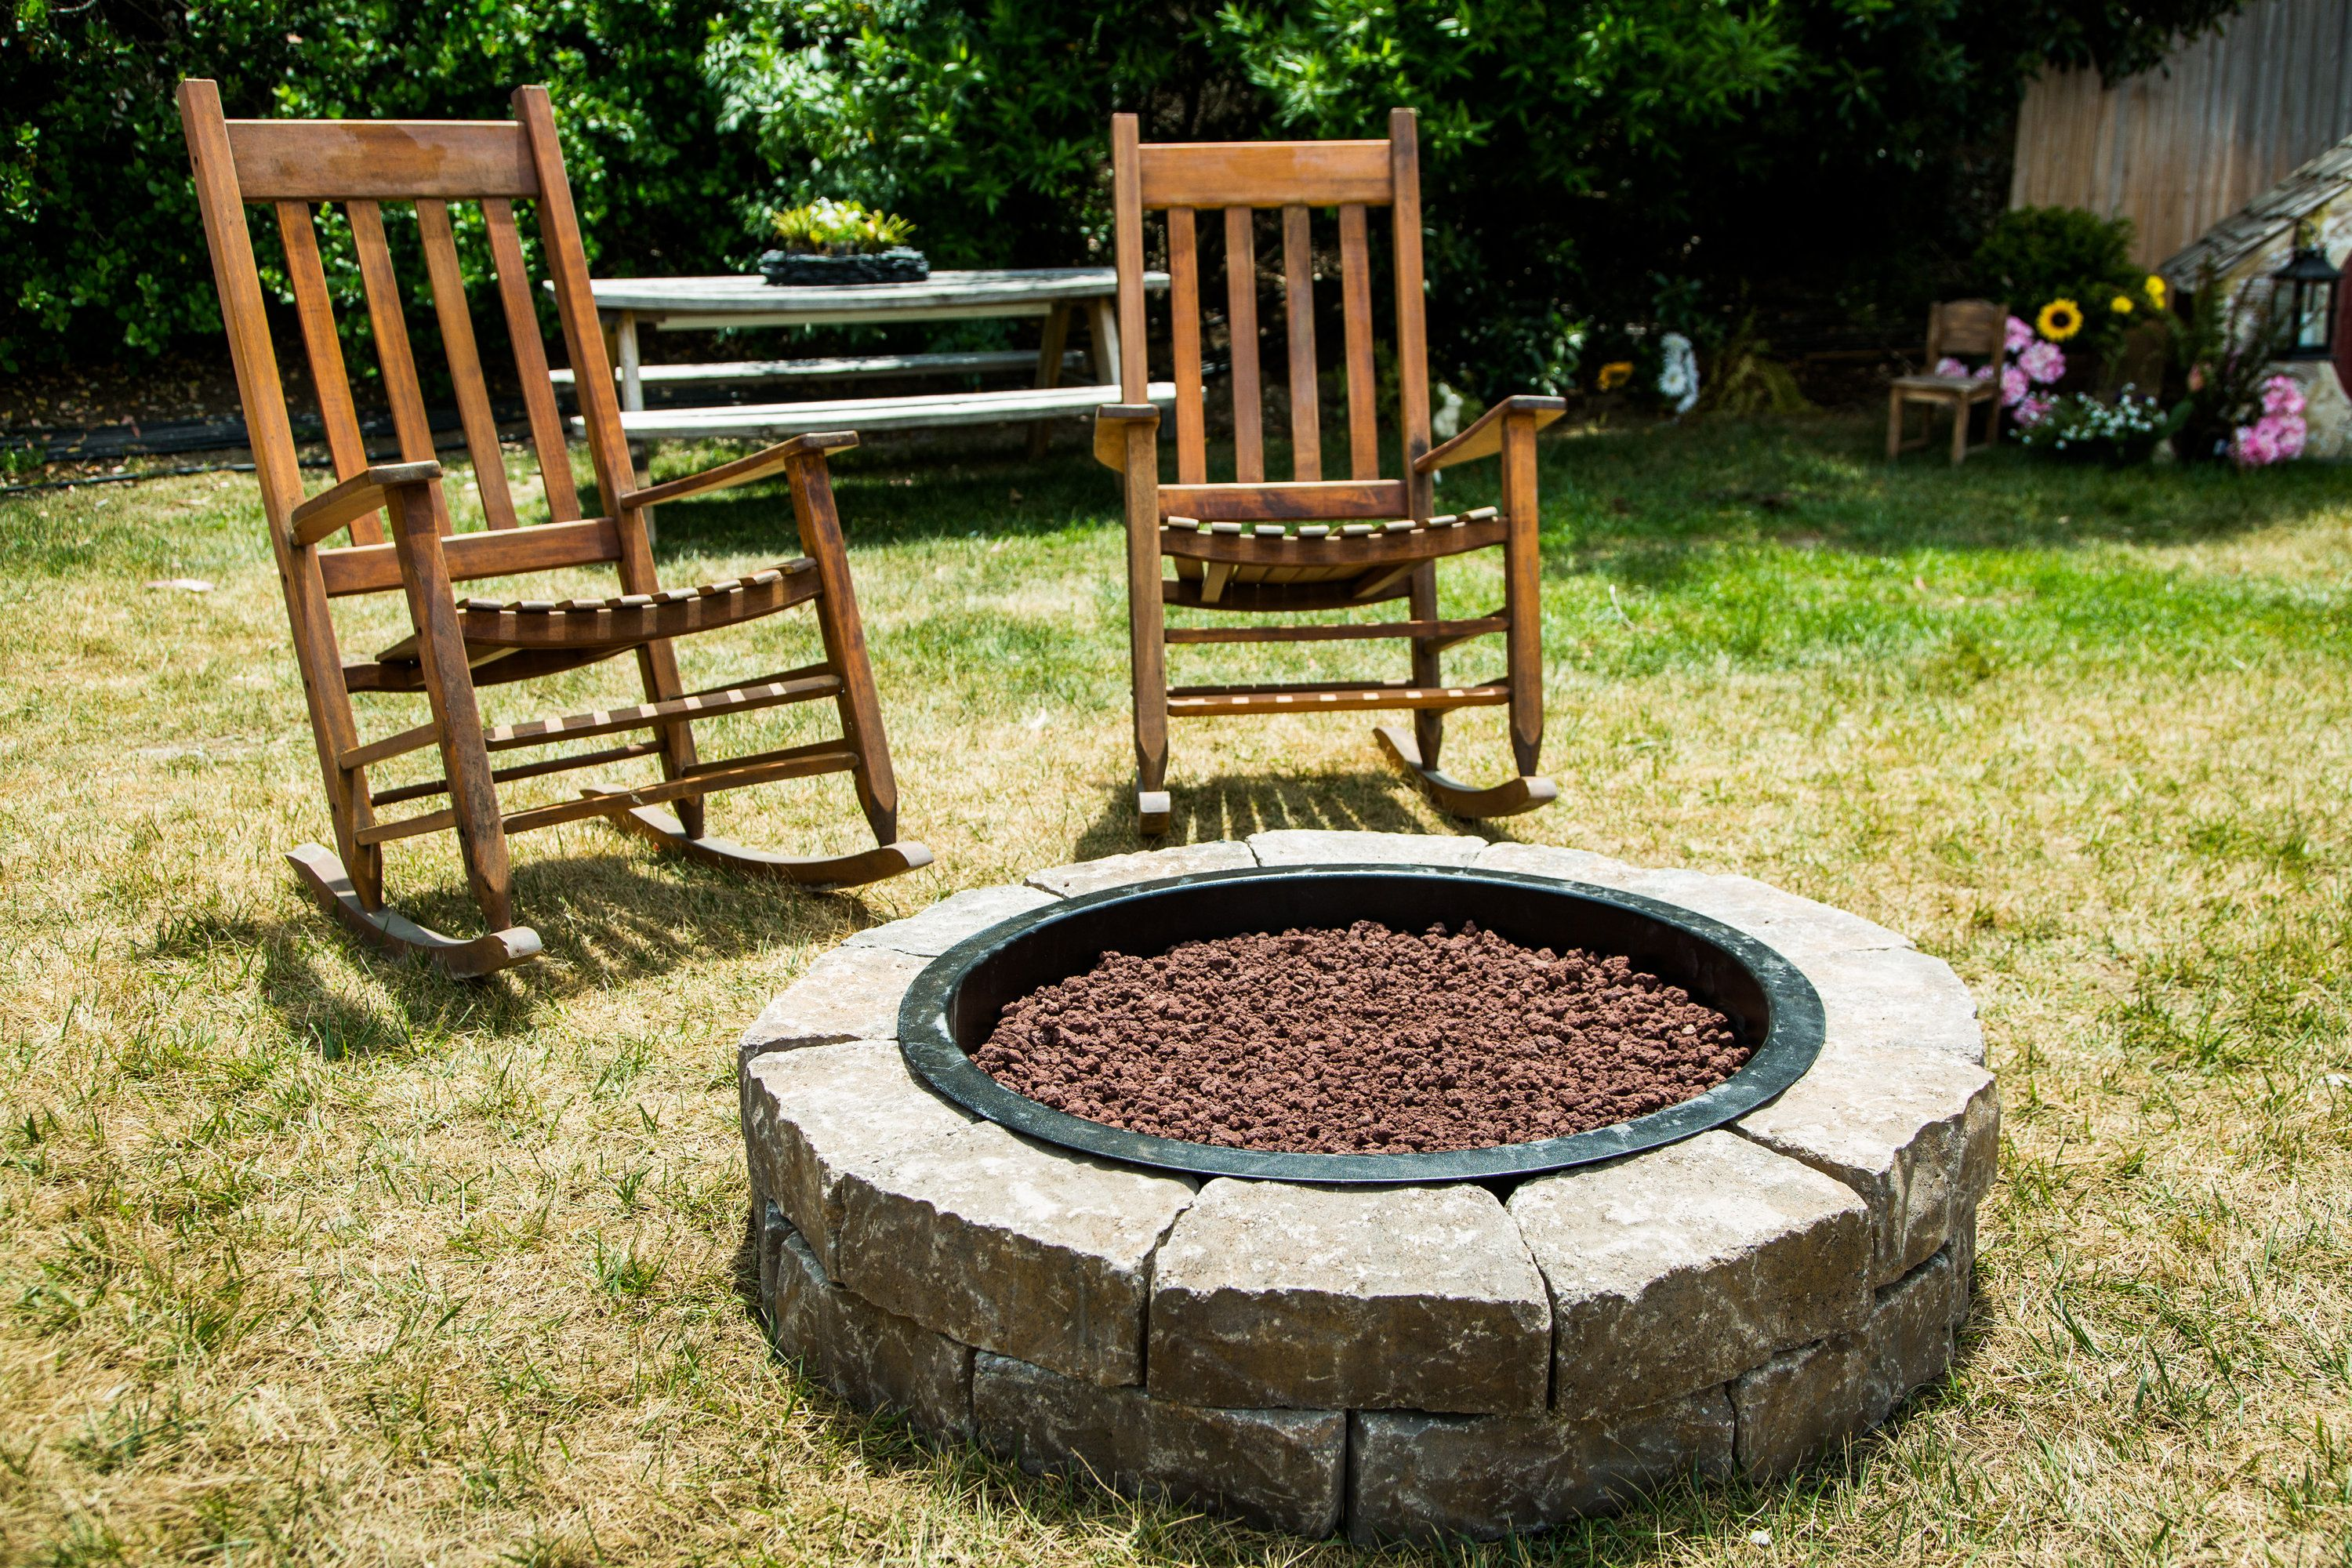 Give Your Yard An Upgrade With The Diy Ultimate Firepit By Matt Iseman Matt Rogers Don T Miss Home Family Weekdays At 10a 9c On Gazebo With Fire Pit Diy Fire